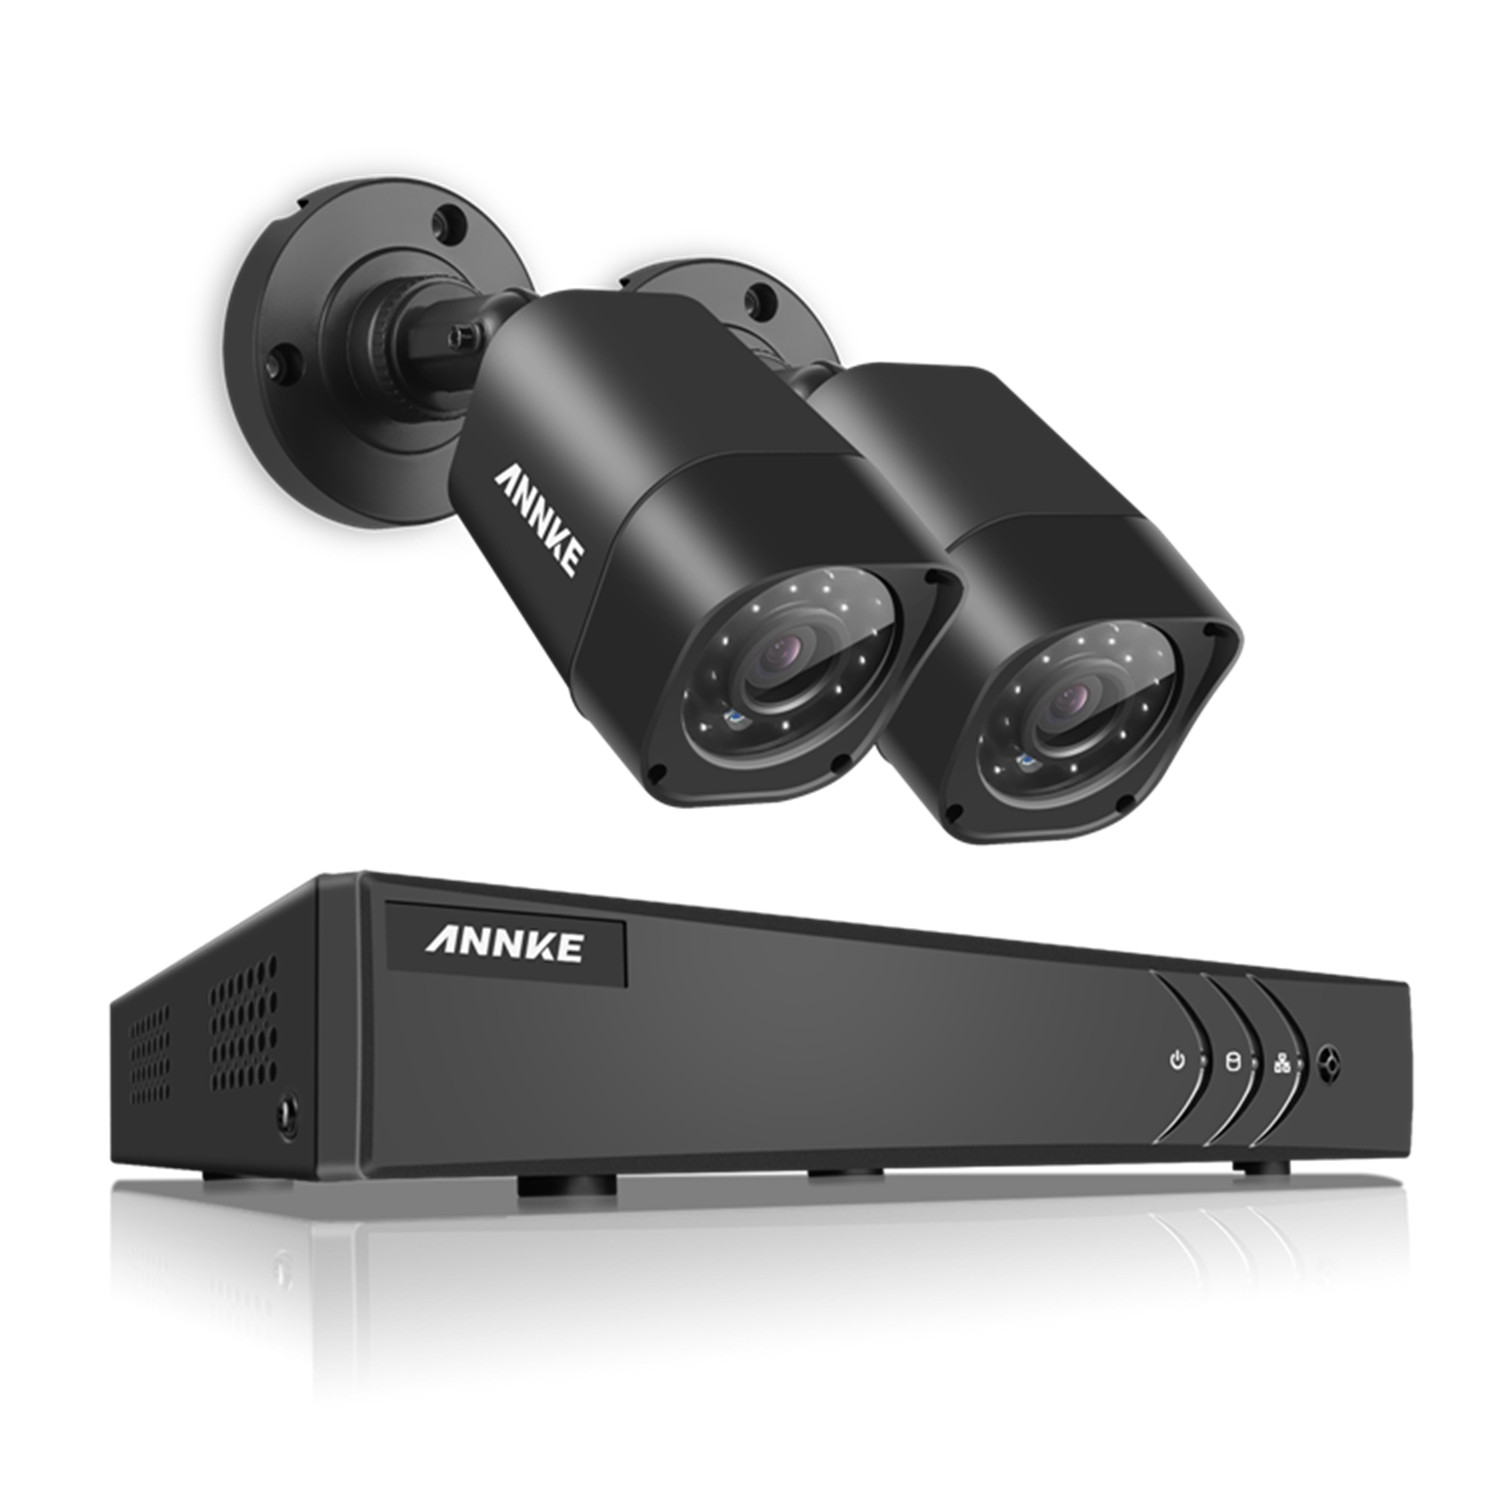 Annke 4-Channel 1080P Lite Video Security System DVR and 2 Weatherproof Indoor/Outdoor Cameras with IR Night Vision LEDs With No Hard Drive Disk